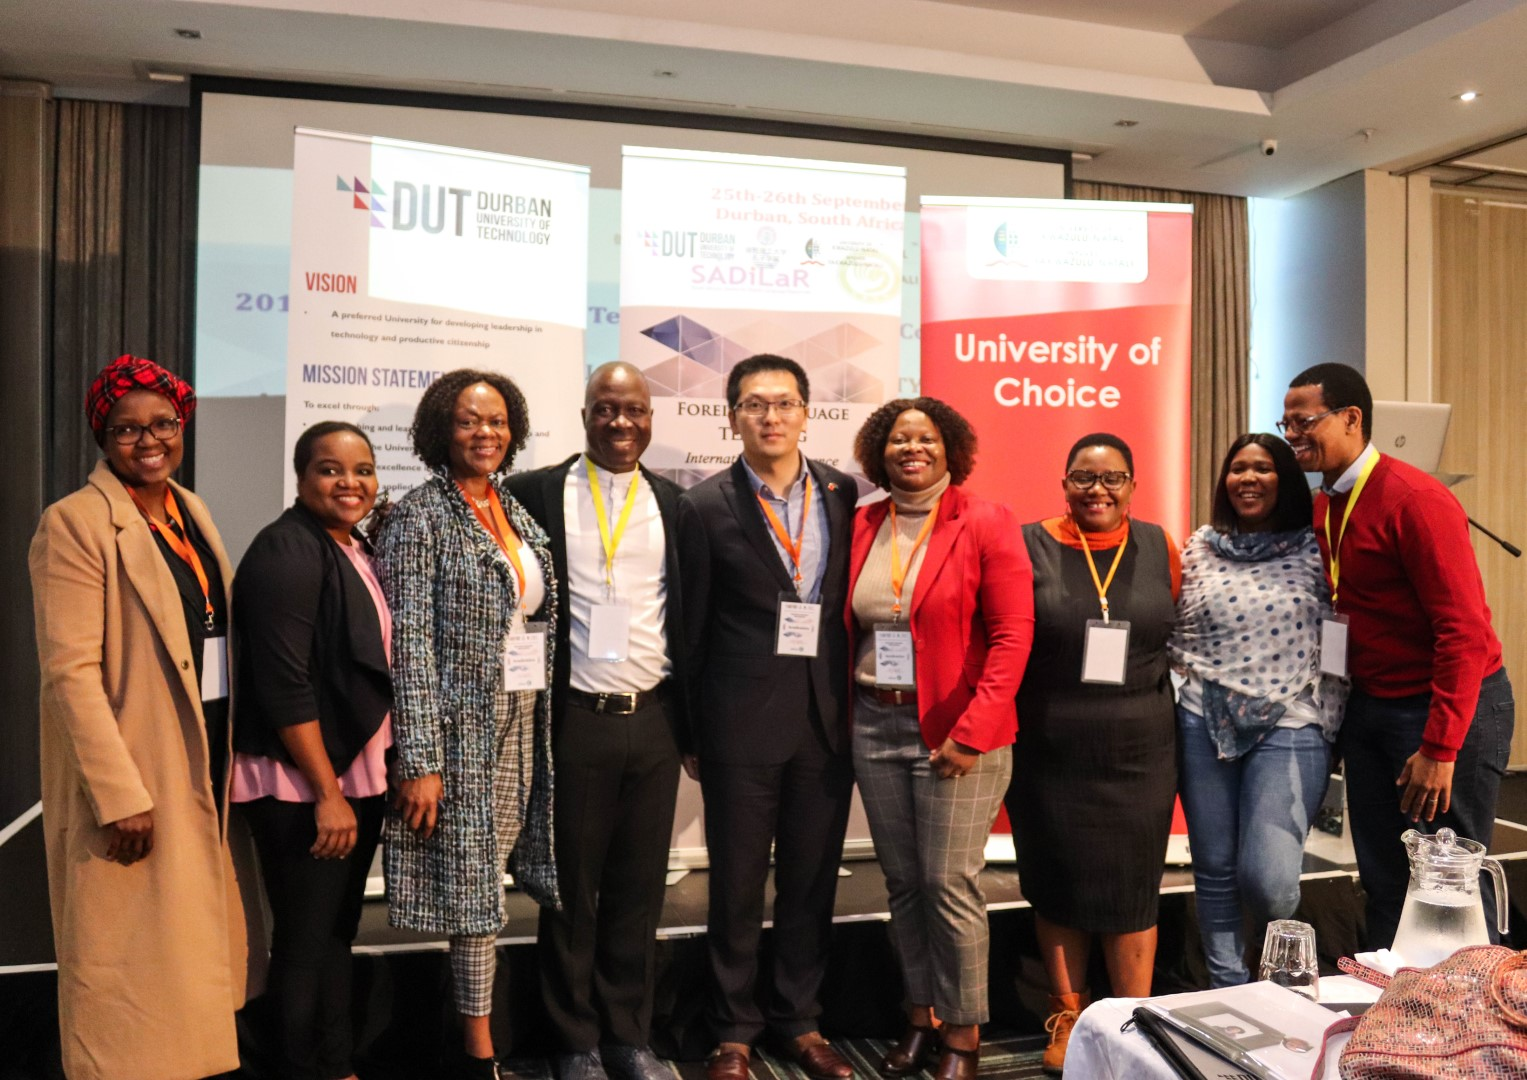 At the Foreign Language Teaching International Conference were (from left) Dr Phindi Dlamini (UKZN), Ms Phumzile Xulu (DUT), Dr Lolie Makhubu-Badenhorst (UKZN), Professor Nhlanhla Mkhize (UKZN), Mr Lin WU (DUT), Professor Nobuhle Hlongwa (UKZN), Dr Gugu Mazibuko (UKZN), Ms Roo Mabuya (SADiLaR: N-WU) and Professor Langa Khumalo (UKZN).